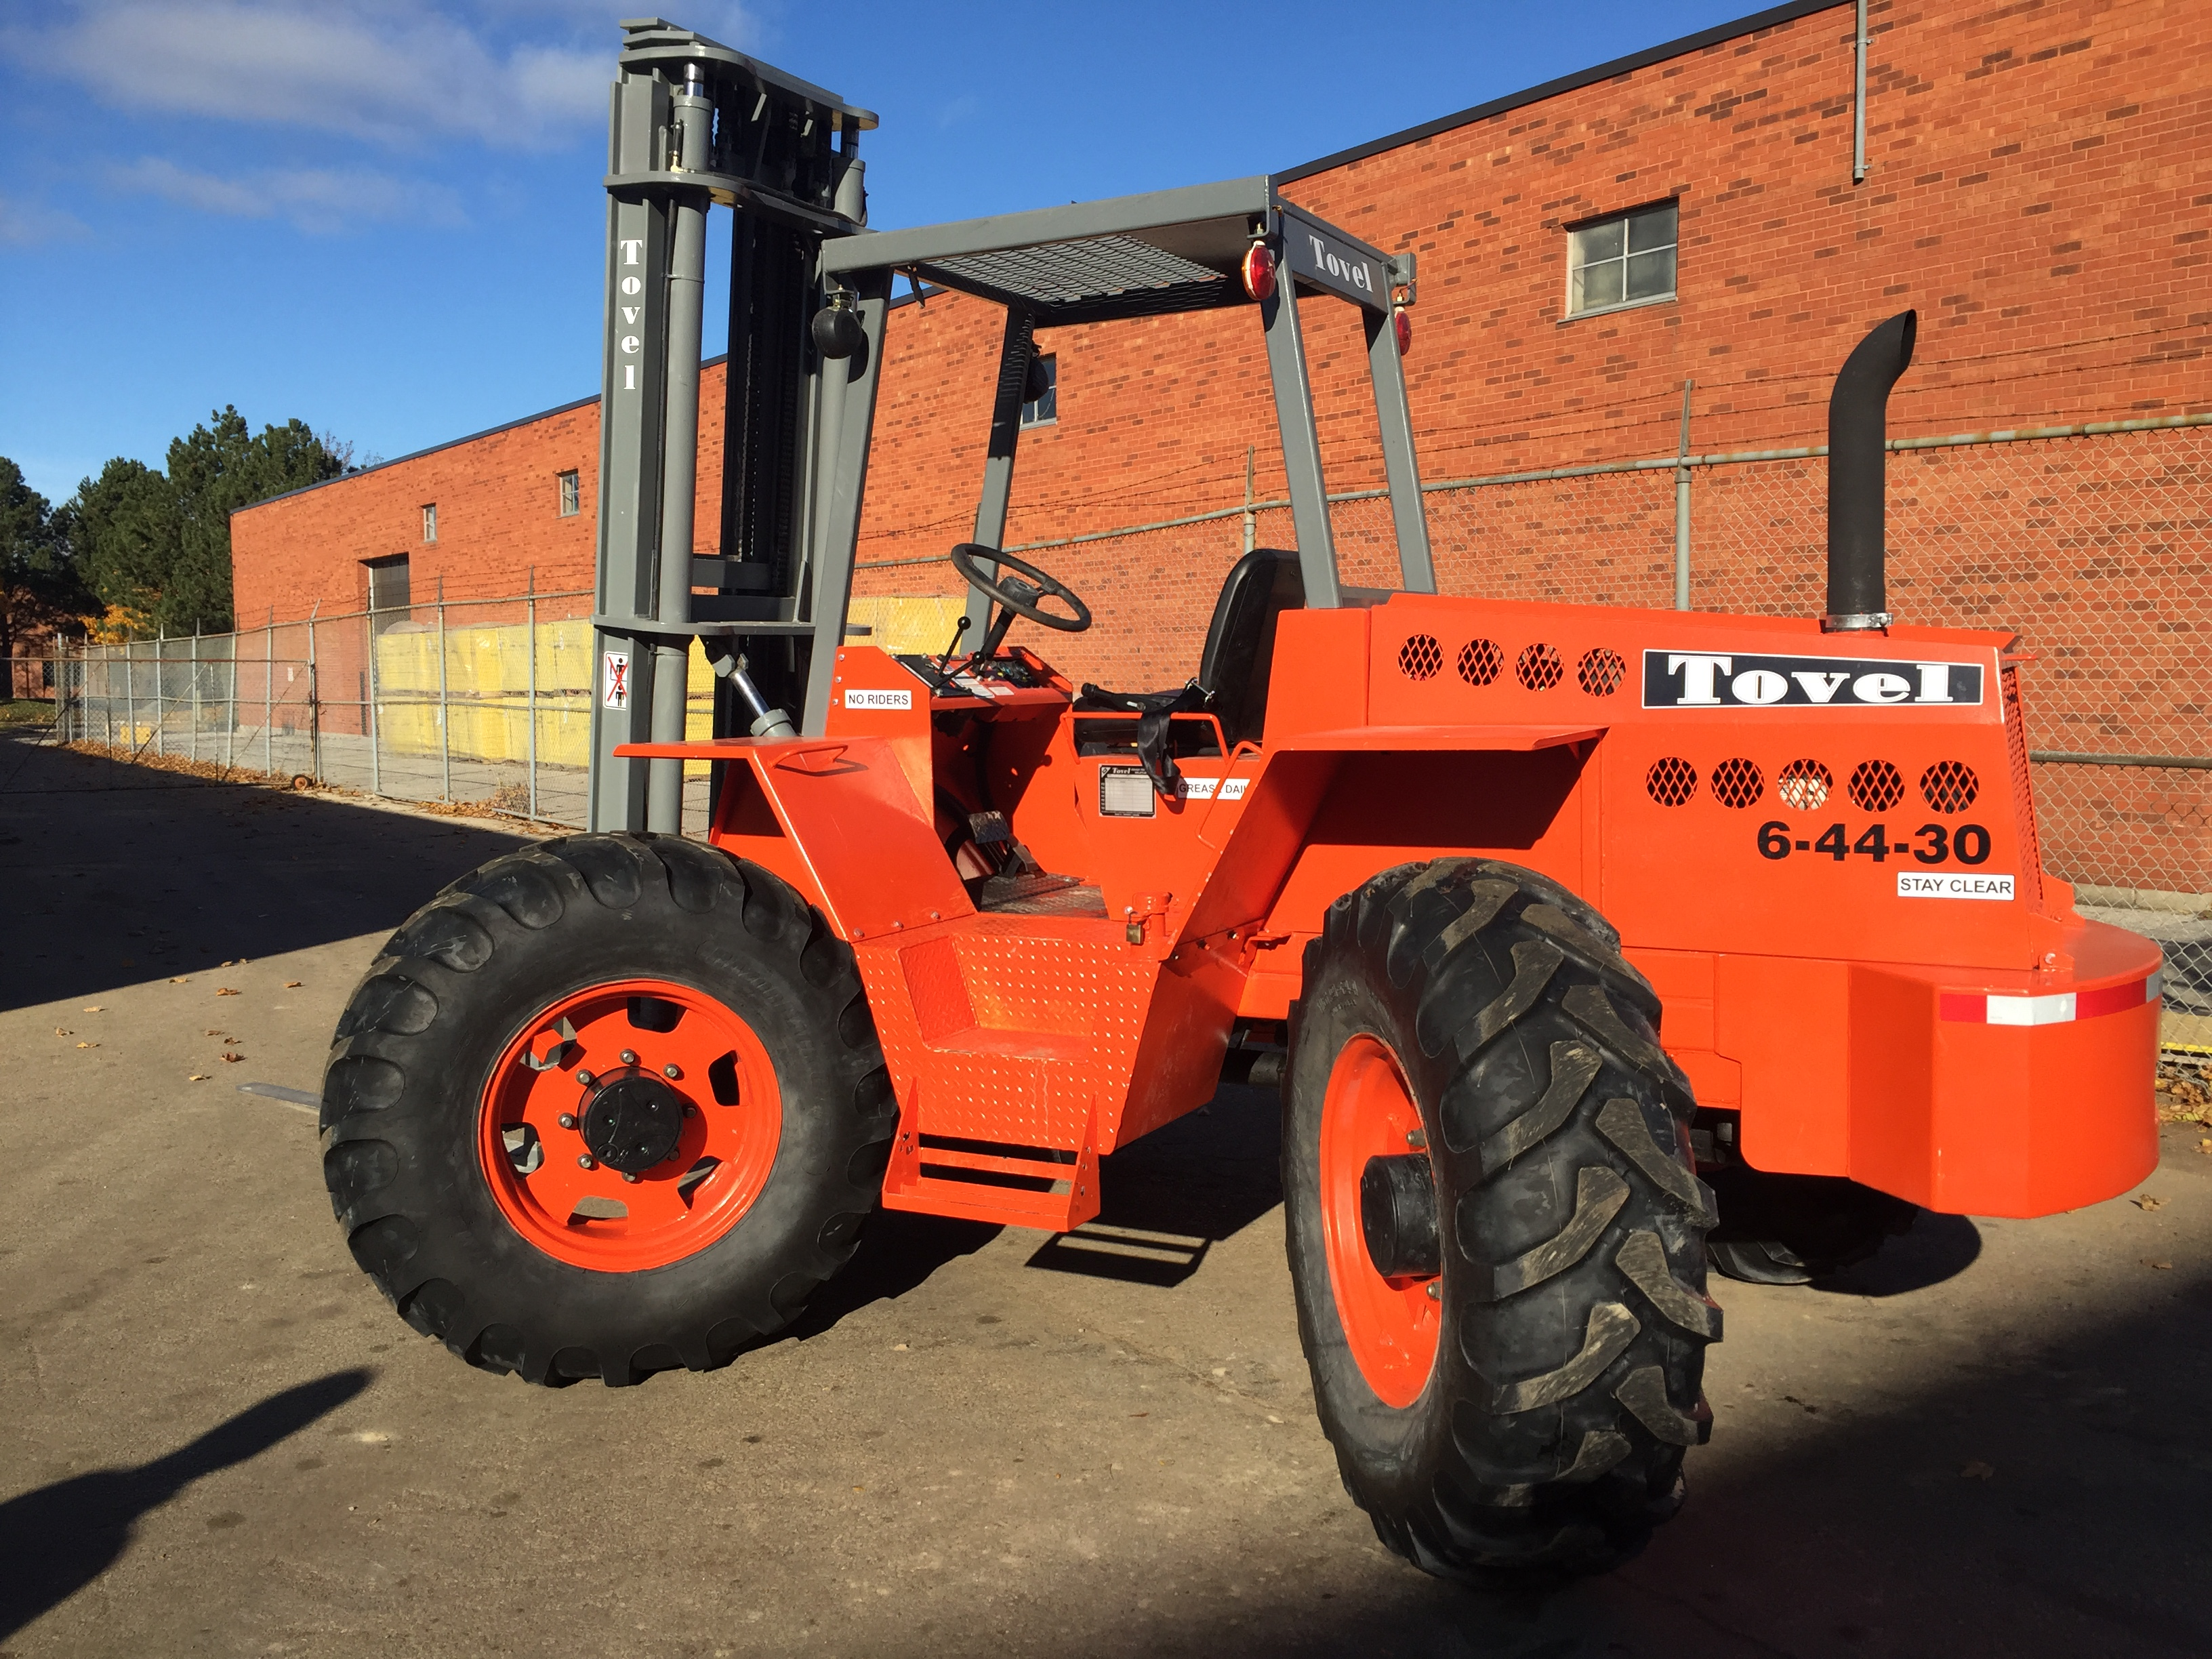 Oem refurbished tovel 4 wheel drive rough terrain forklift tovel 6 44 30 rough terrain forklift magnum lt 1betcityfo Image collections